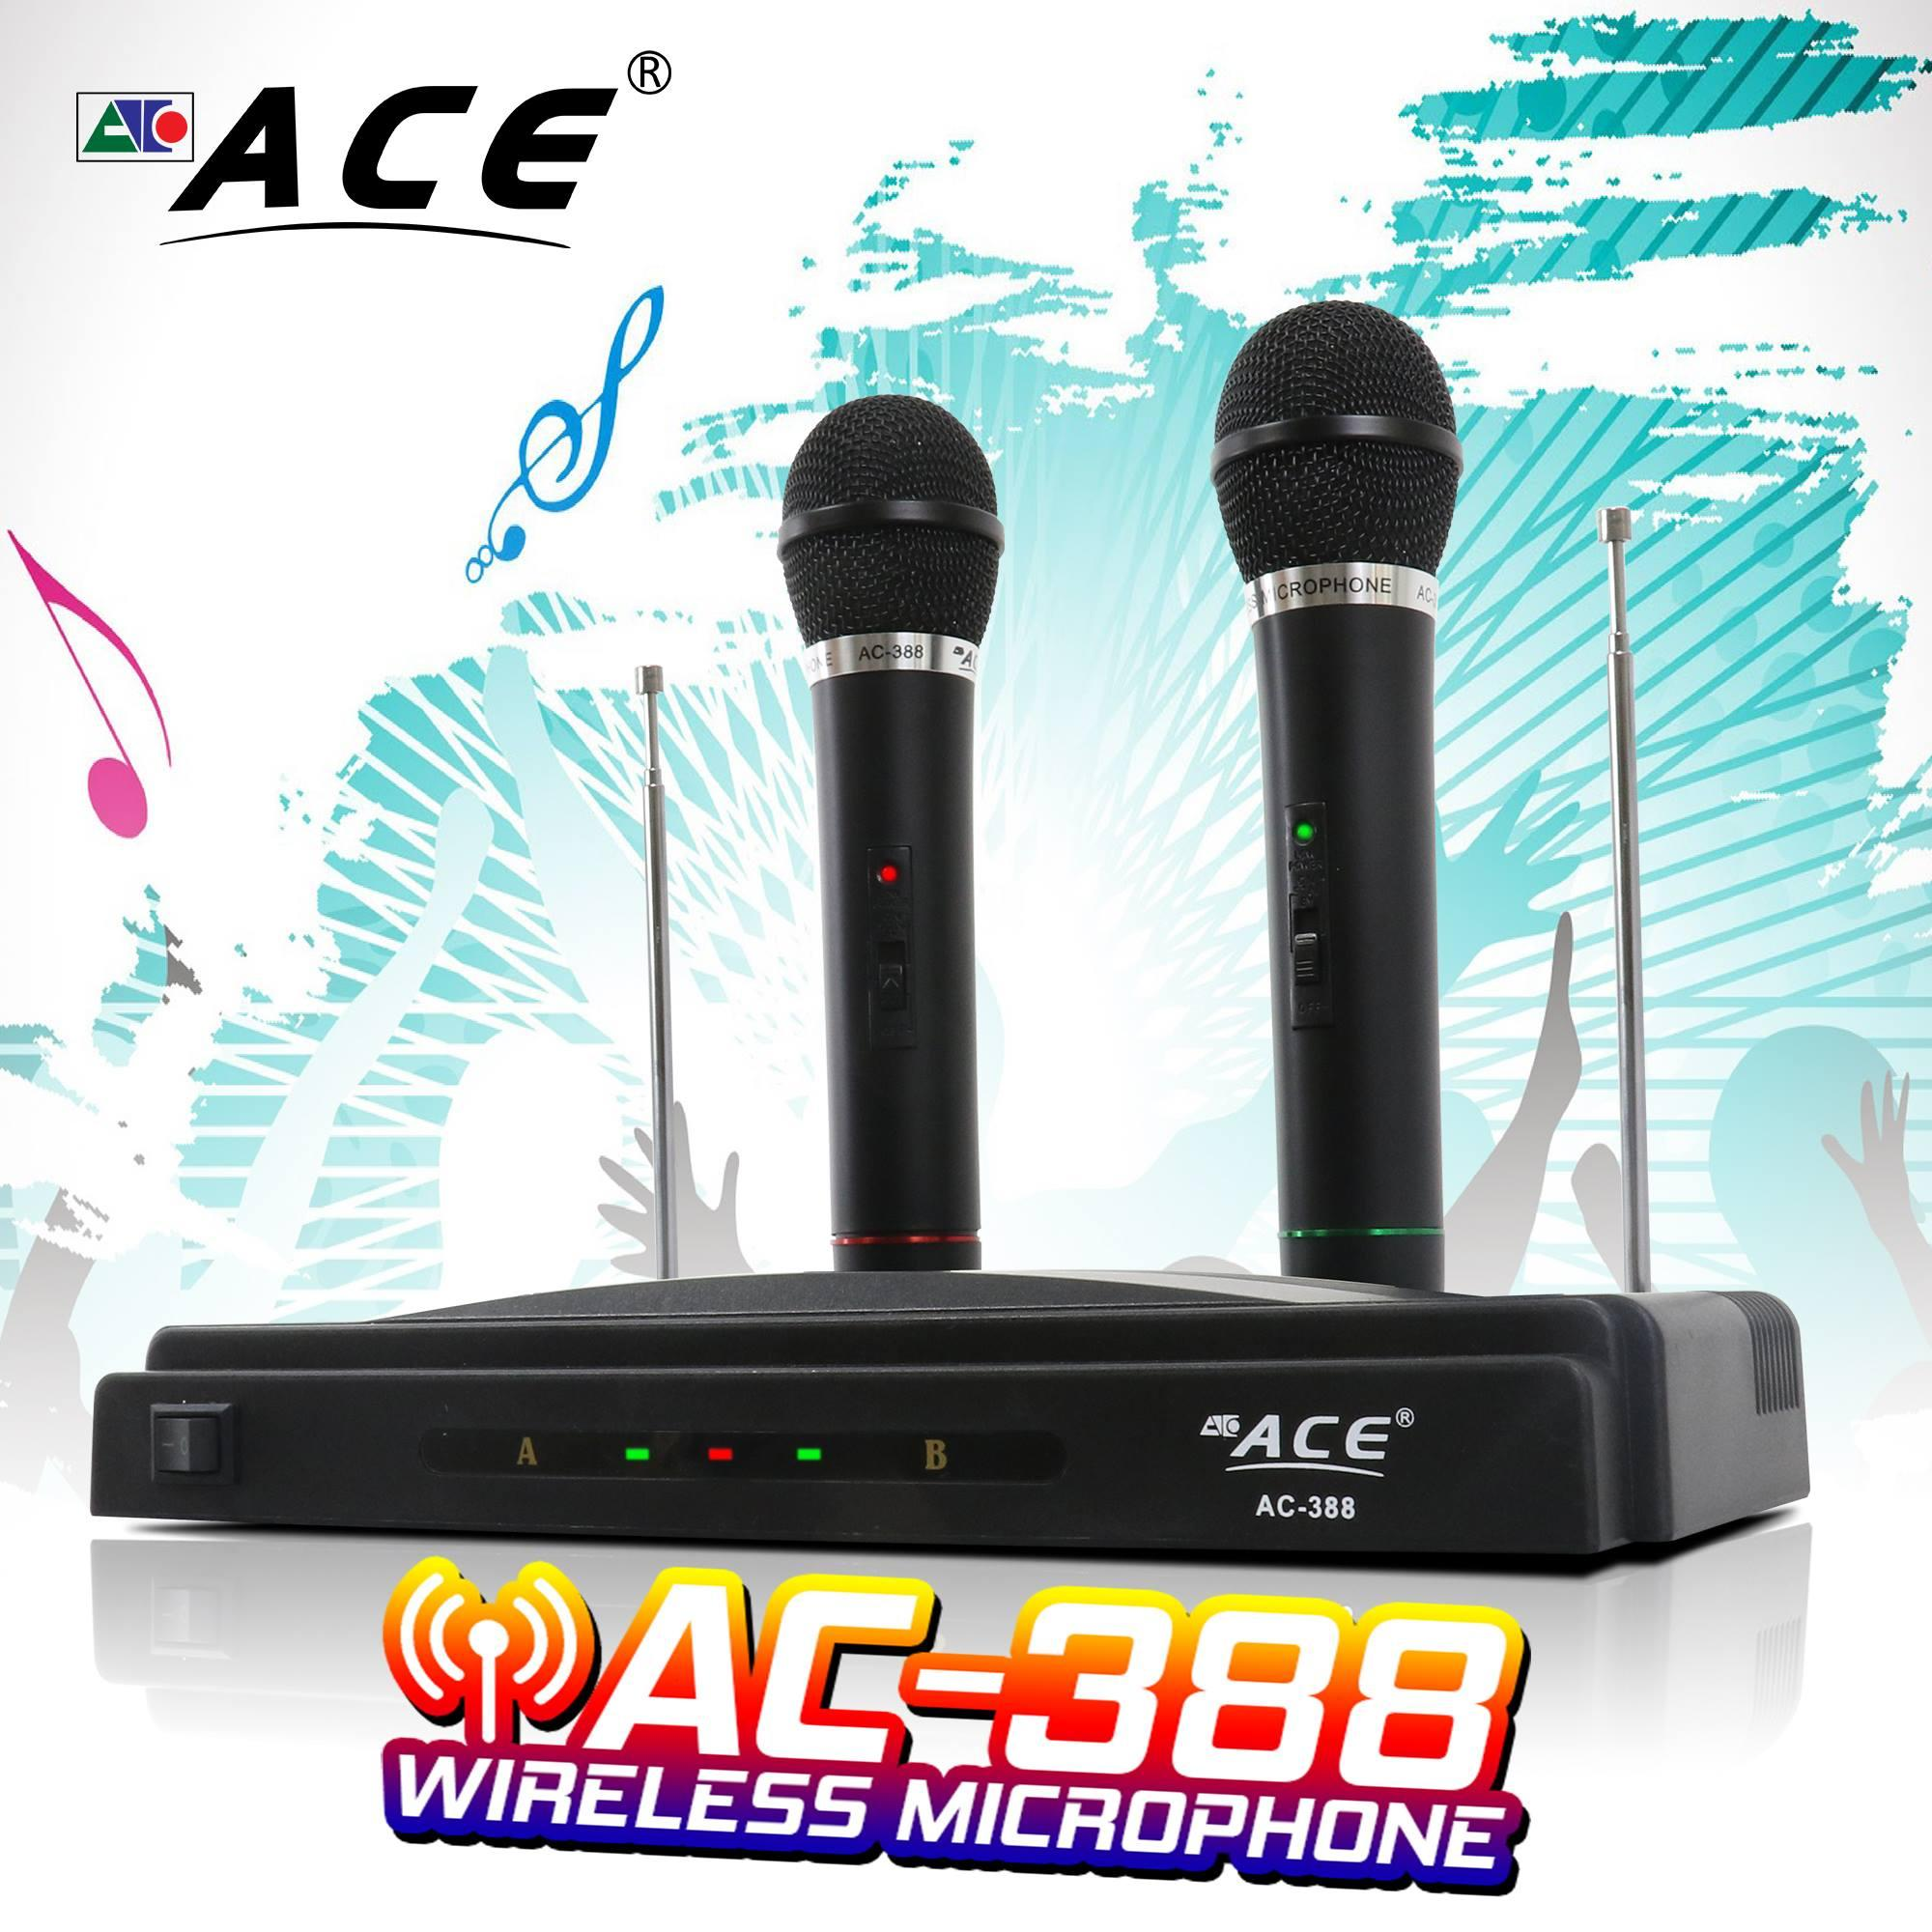 Ace Wireless Microphone Ac-388 By Ace Electronic Shop.